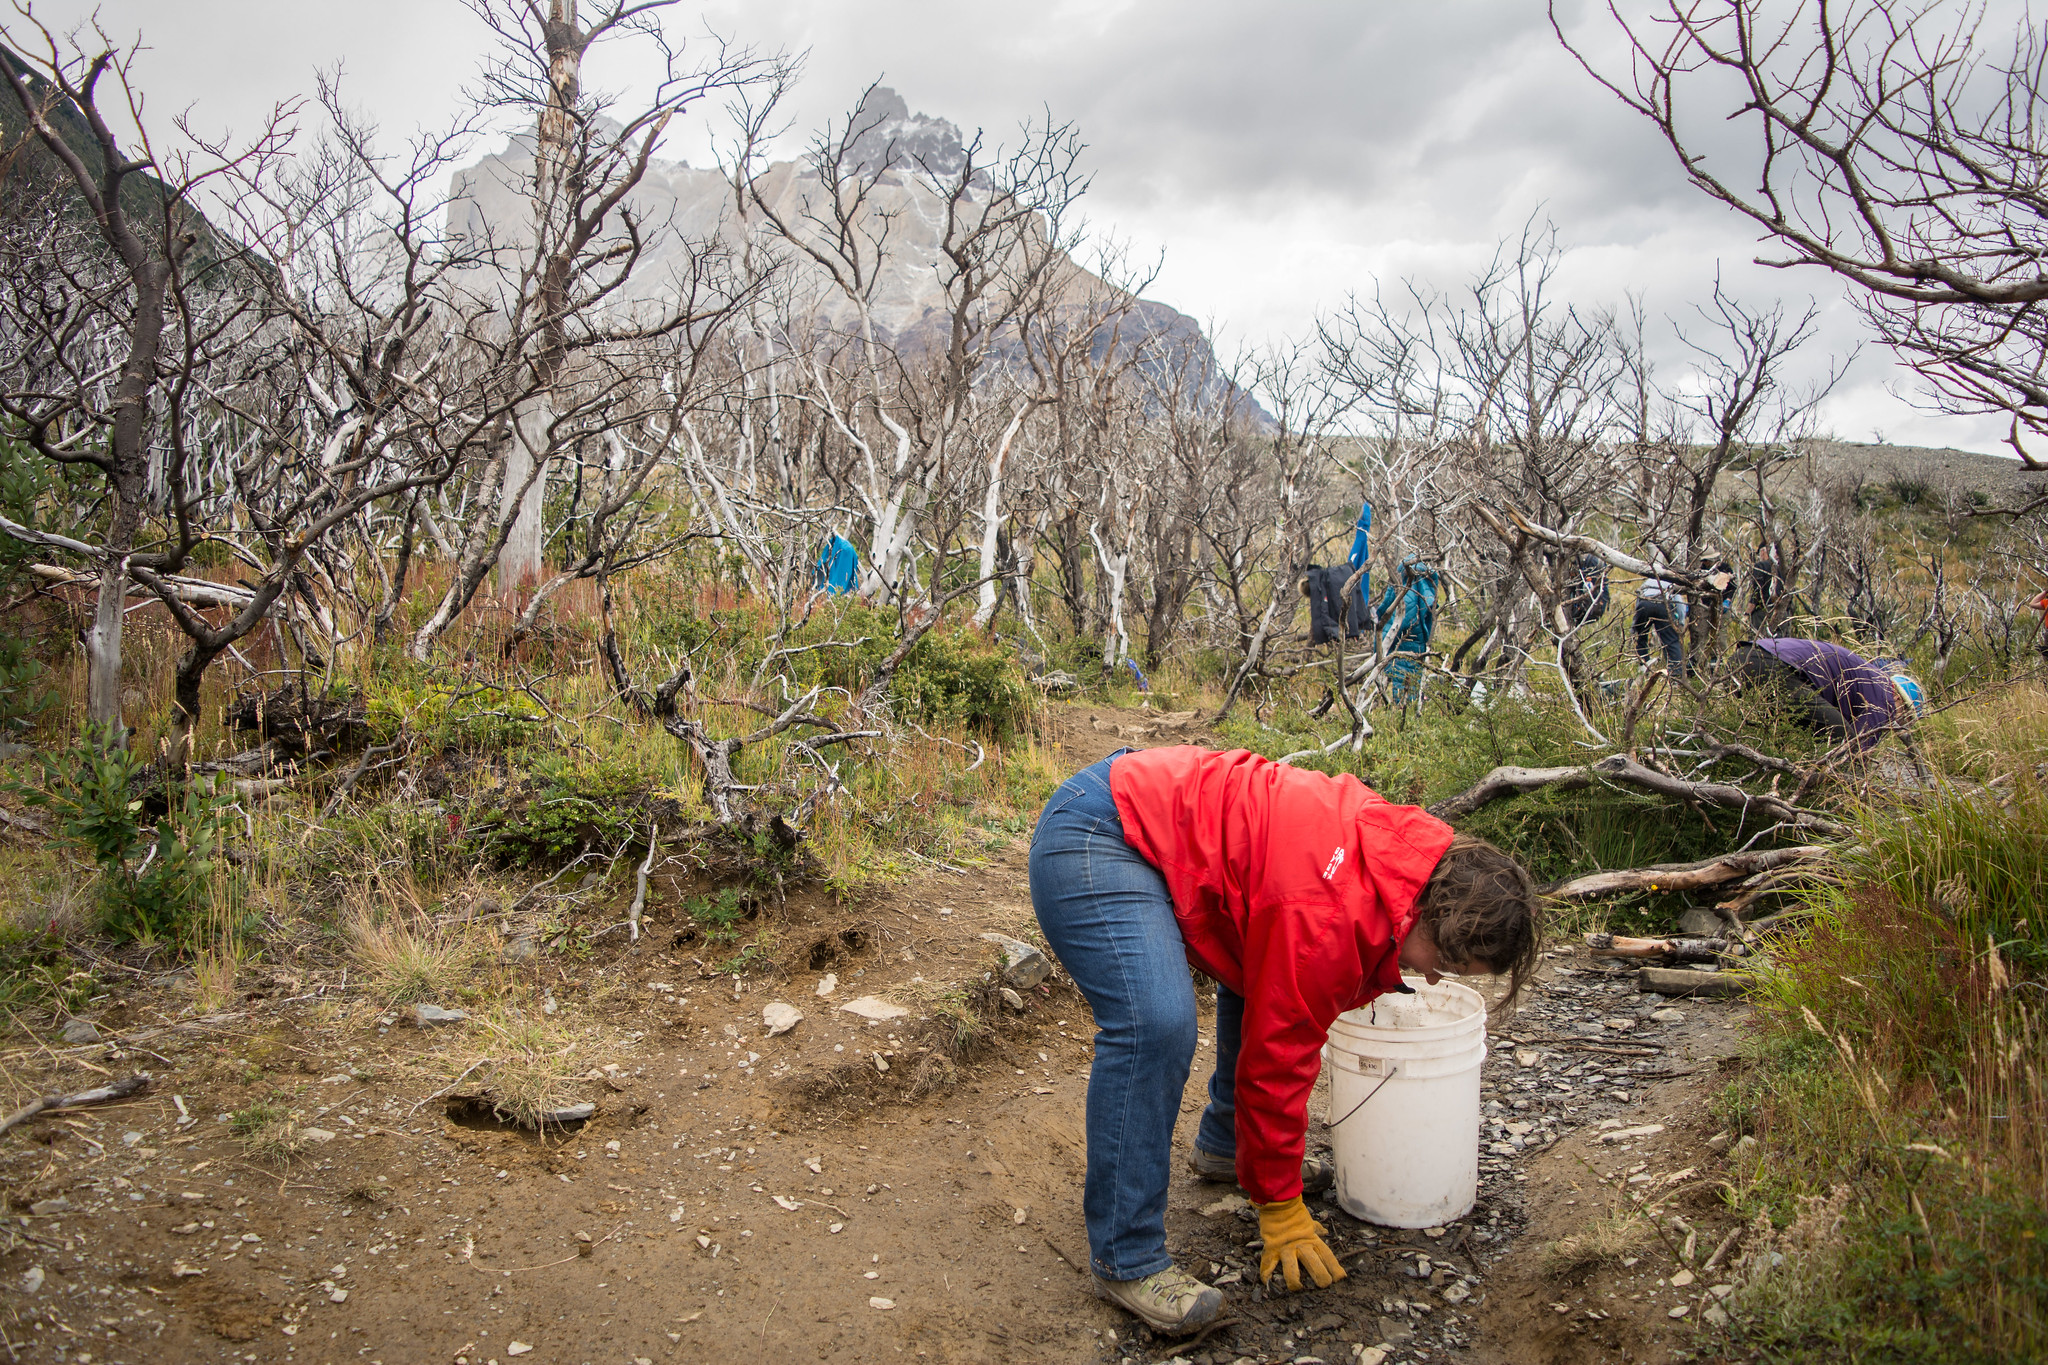 Clean up Party in Torres del Paine